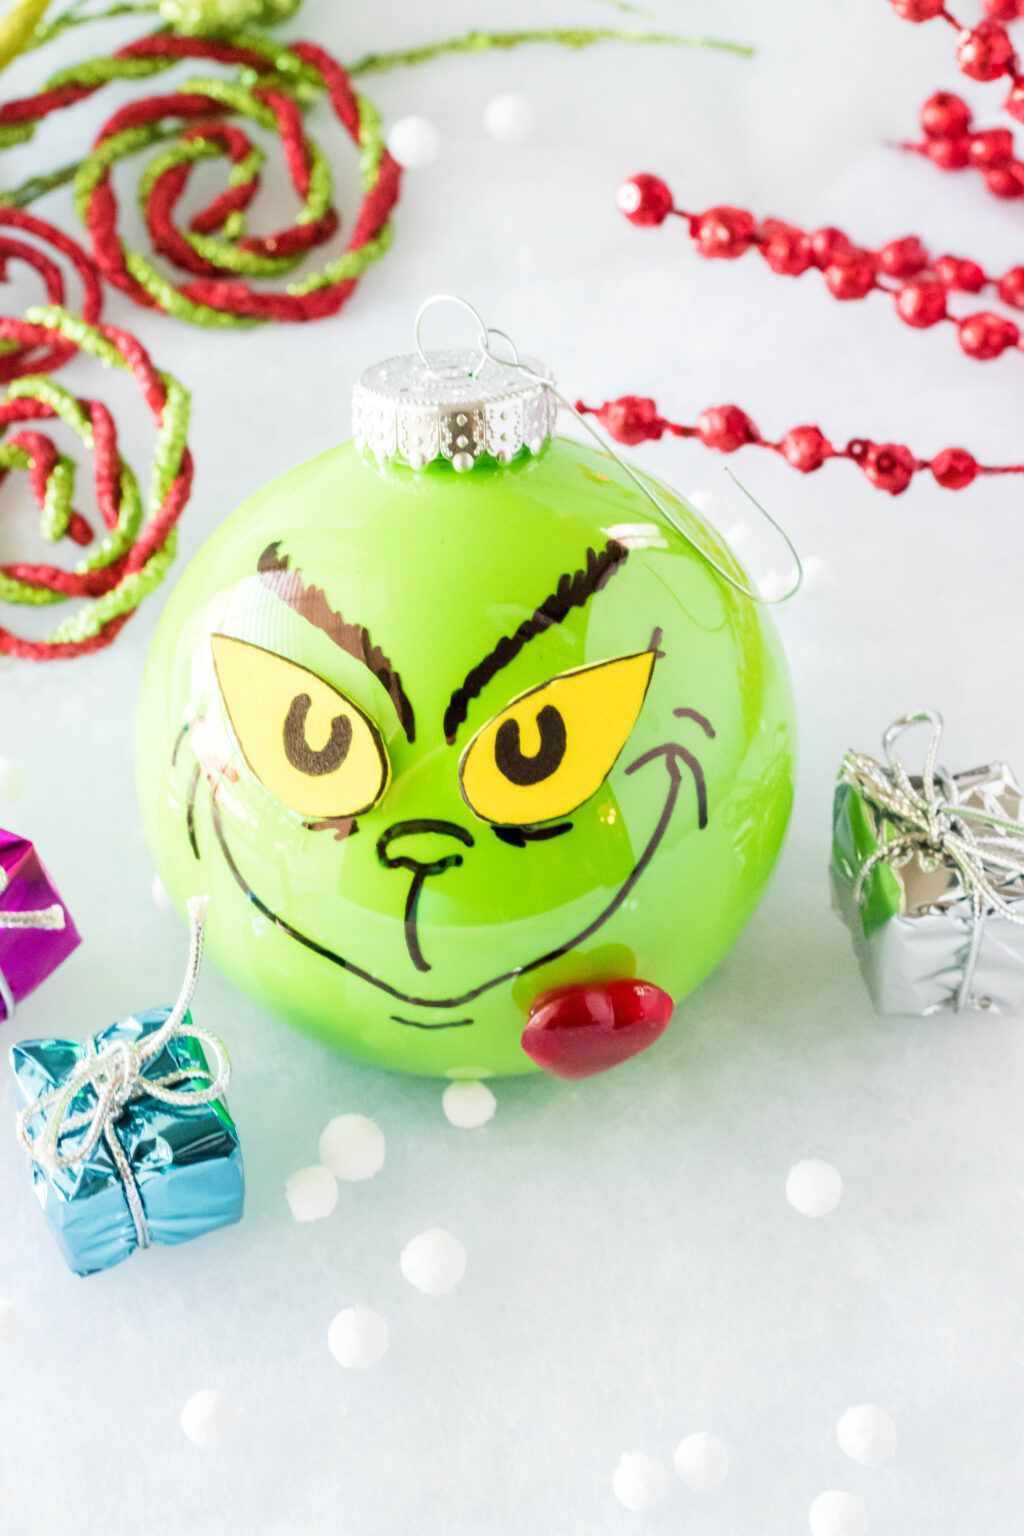 This Diy Grinch Ornament Is Easy To Make And The Perfect Addition To Any Christm Homemade Christmas Ornaments Diy Grinch Ornaments Grinch Christmas Decorations